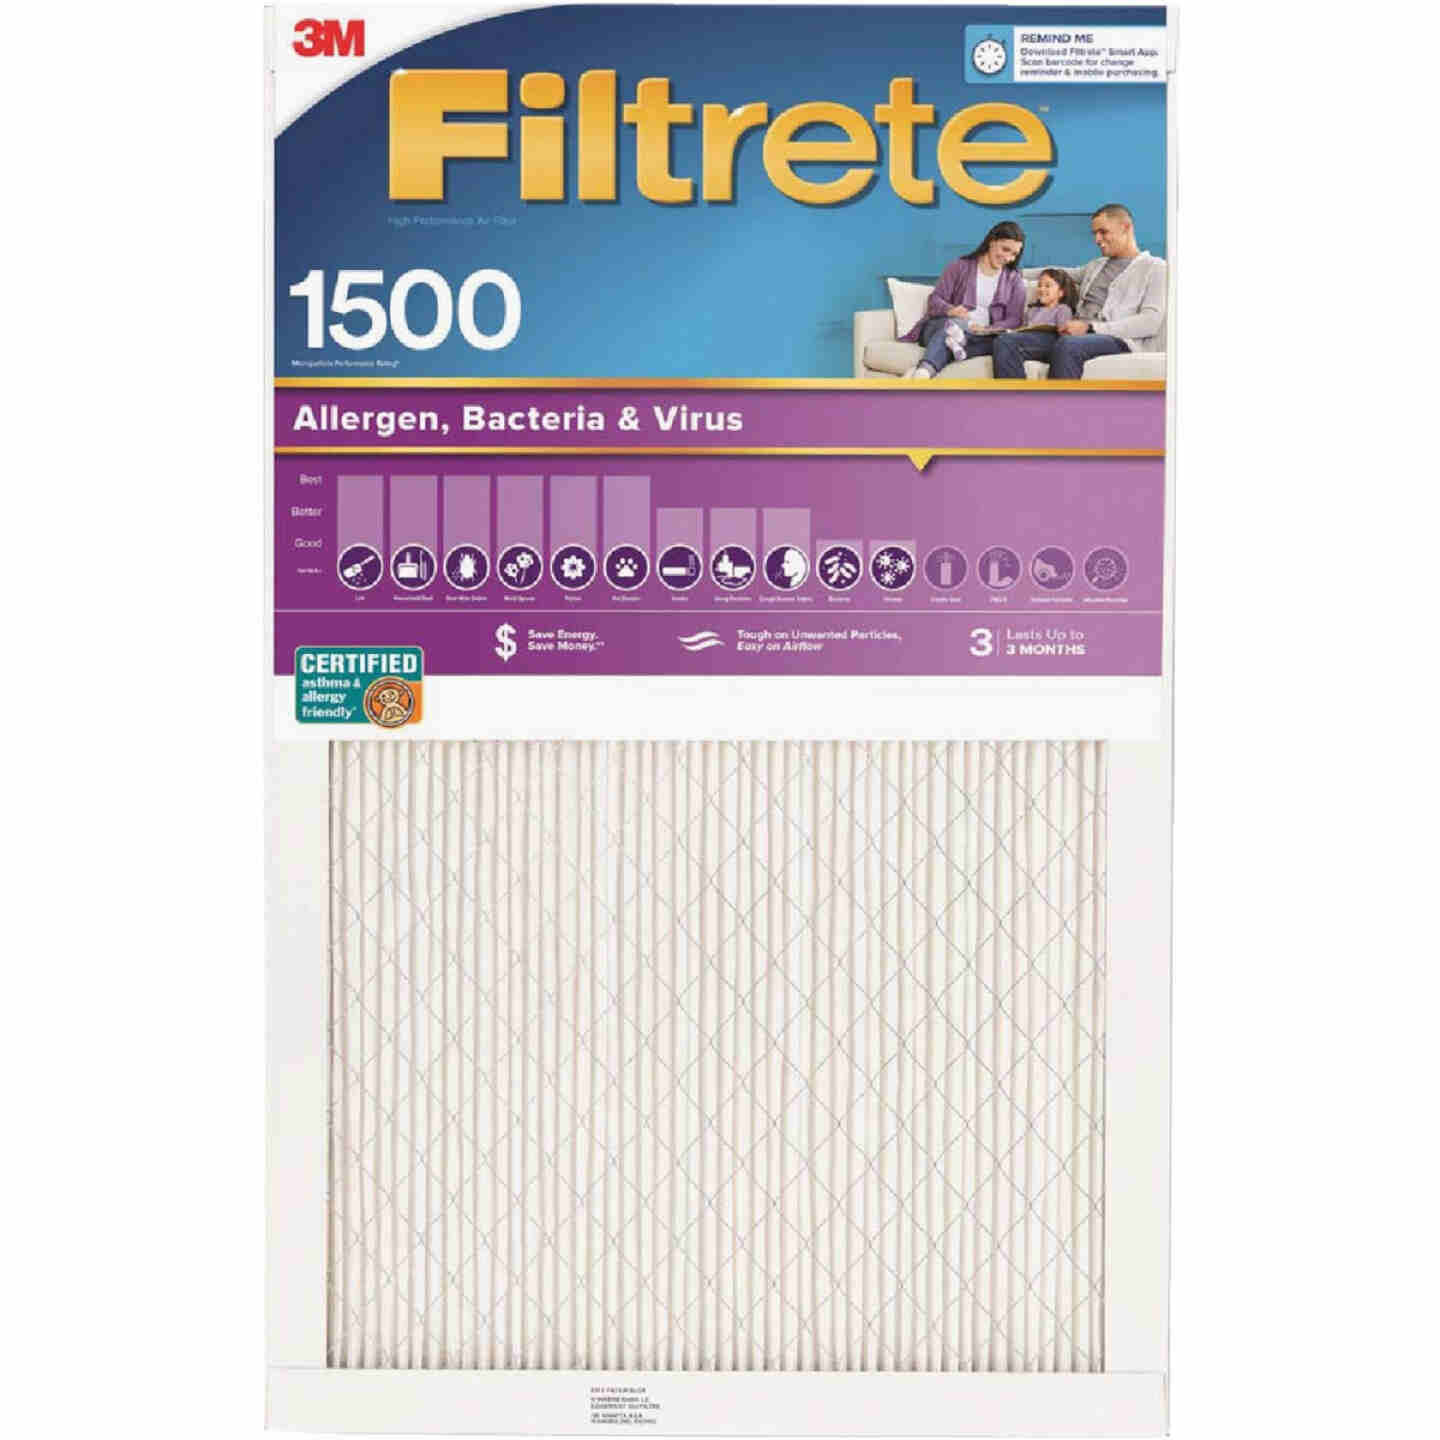 3M Filtrete 16 In. x 16 In. x 1 In. Ultra Allergen Healthy Living 1550 MPR Furnace Filter Image 1